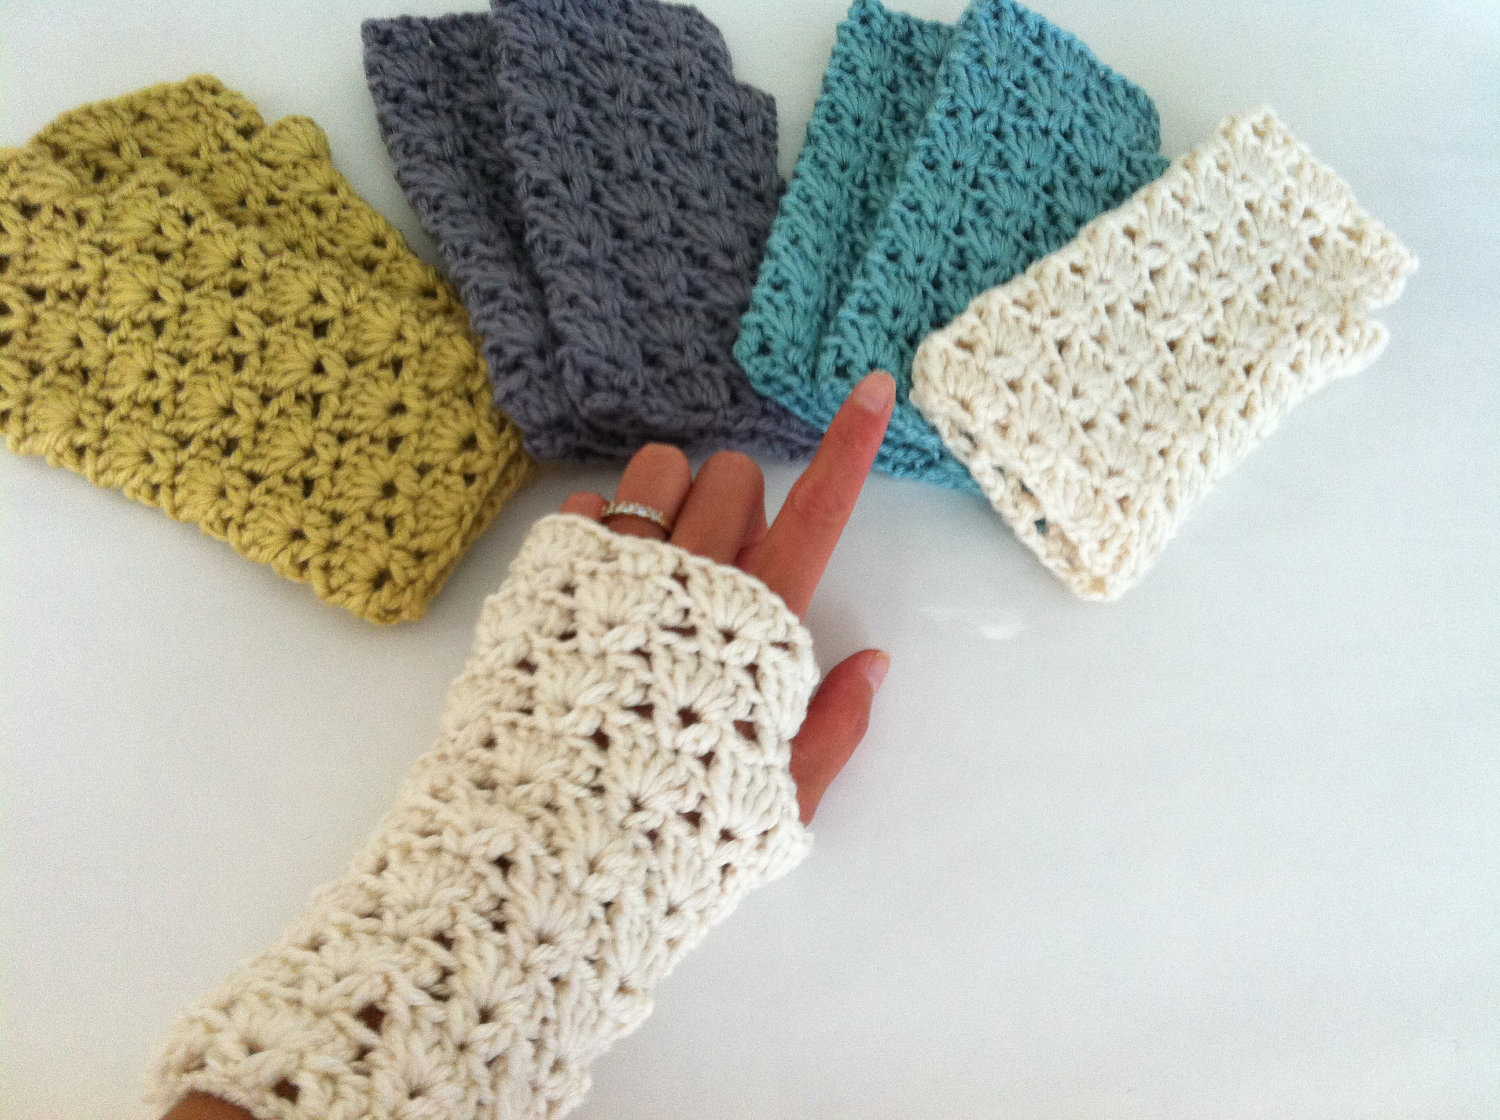 Why Crochet Fingerless Gloves Are Gaining Popularity Than Regular